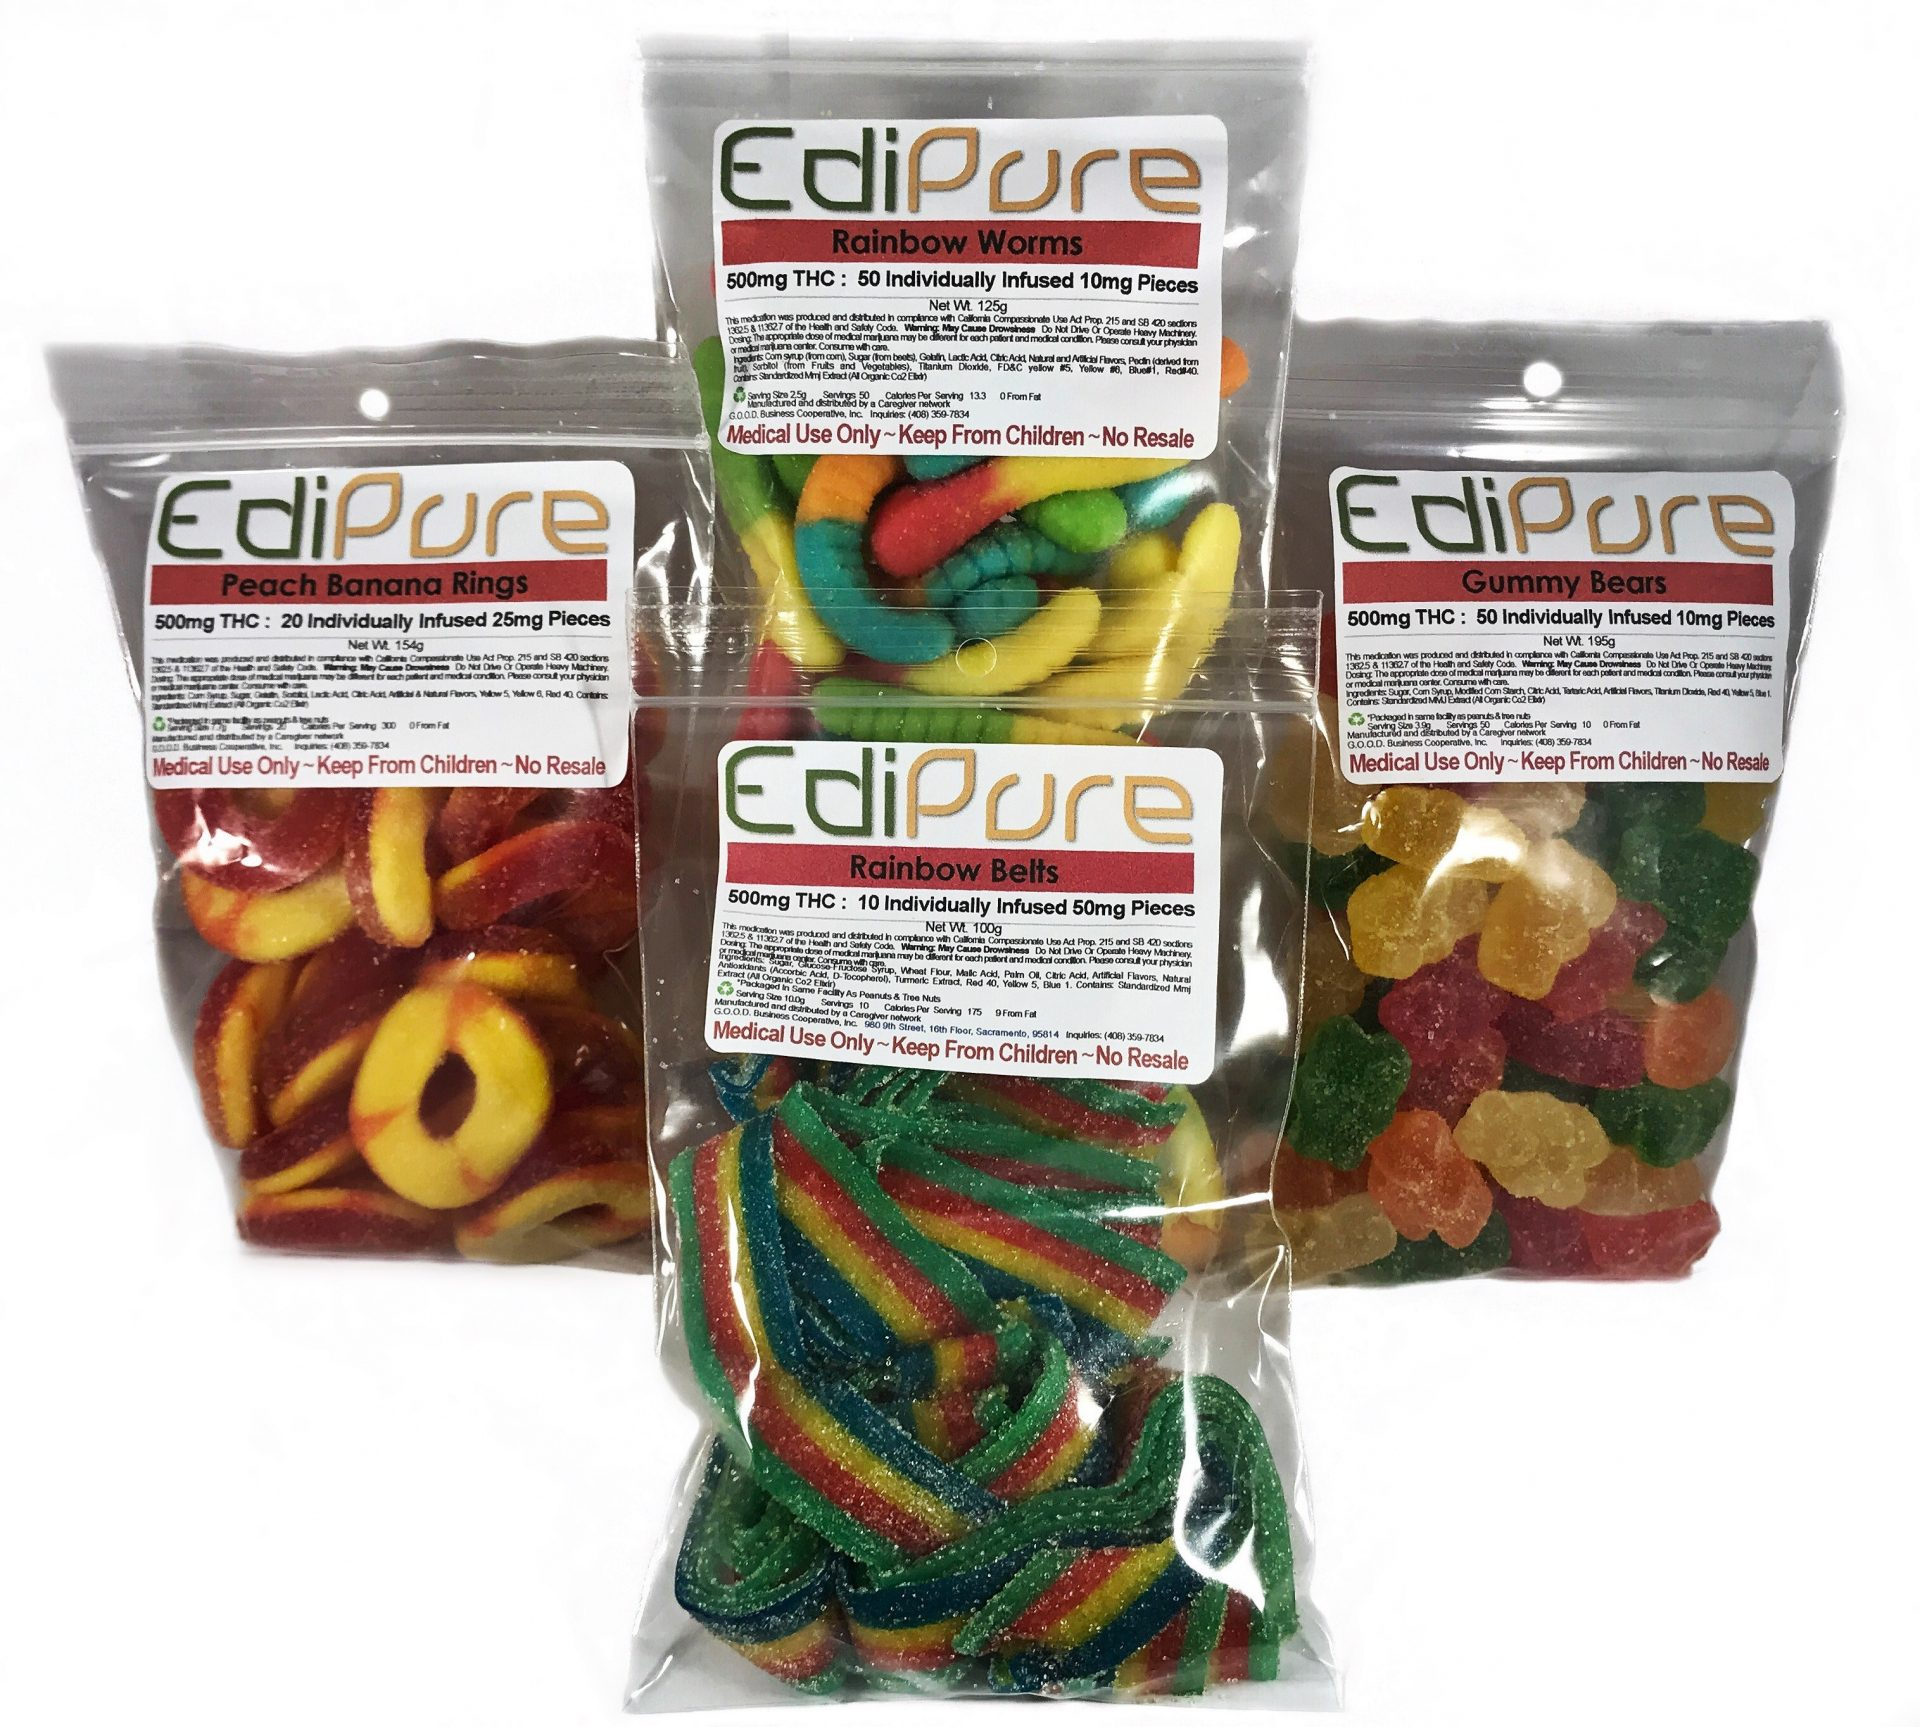 eed maps with Edipure Edible Candy 500mg Thc 4 Flavors on Alpine Vape Oil Disposable Pen furthermore Free Clipart 3021 besides Lucky Shamrock further Dj Irene Circus 7 in addition Blackberry Kush.